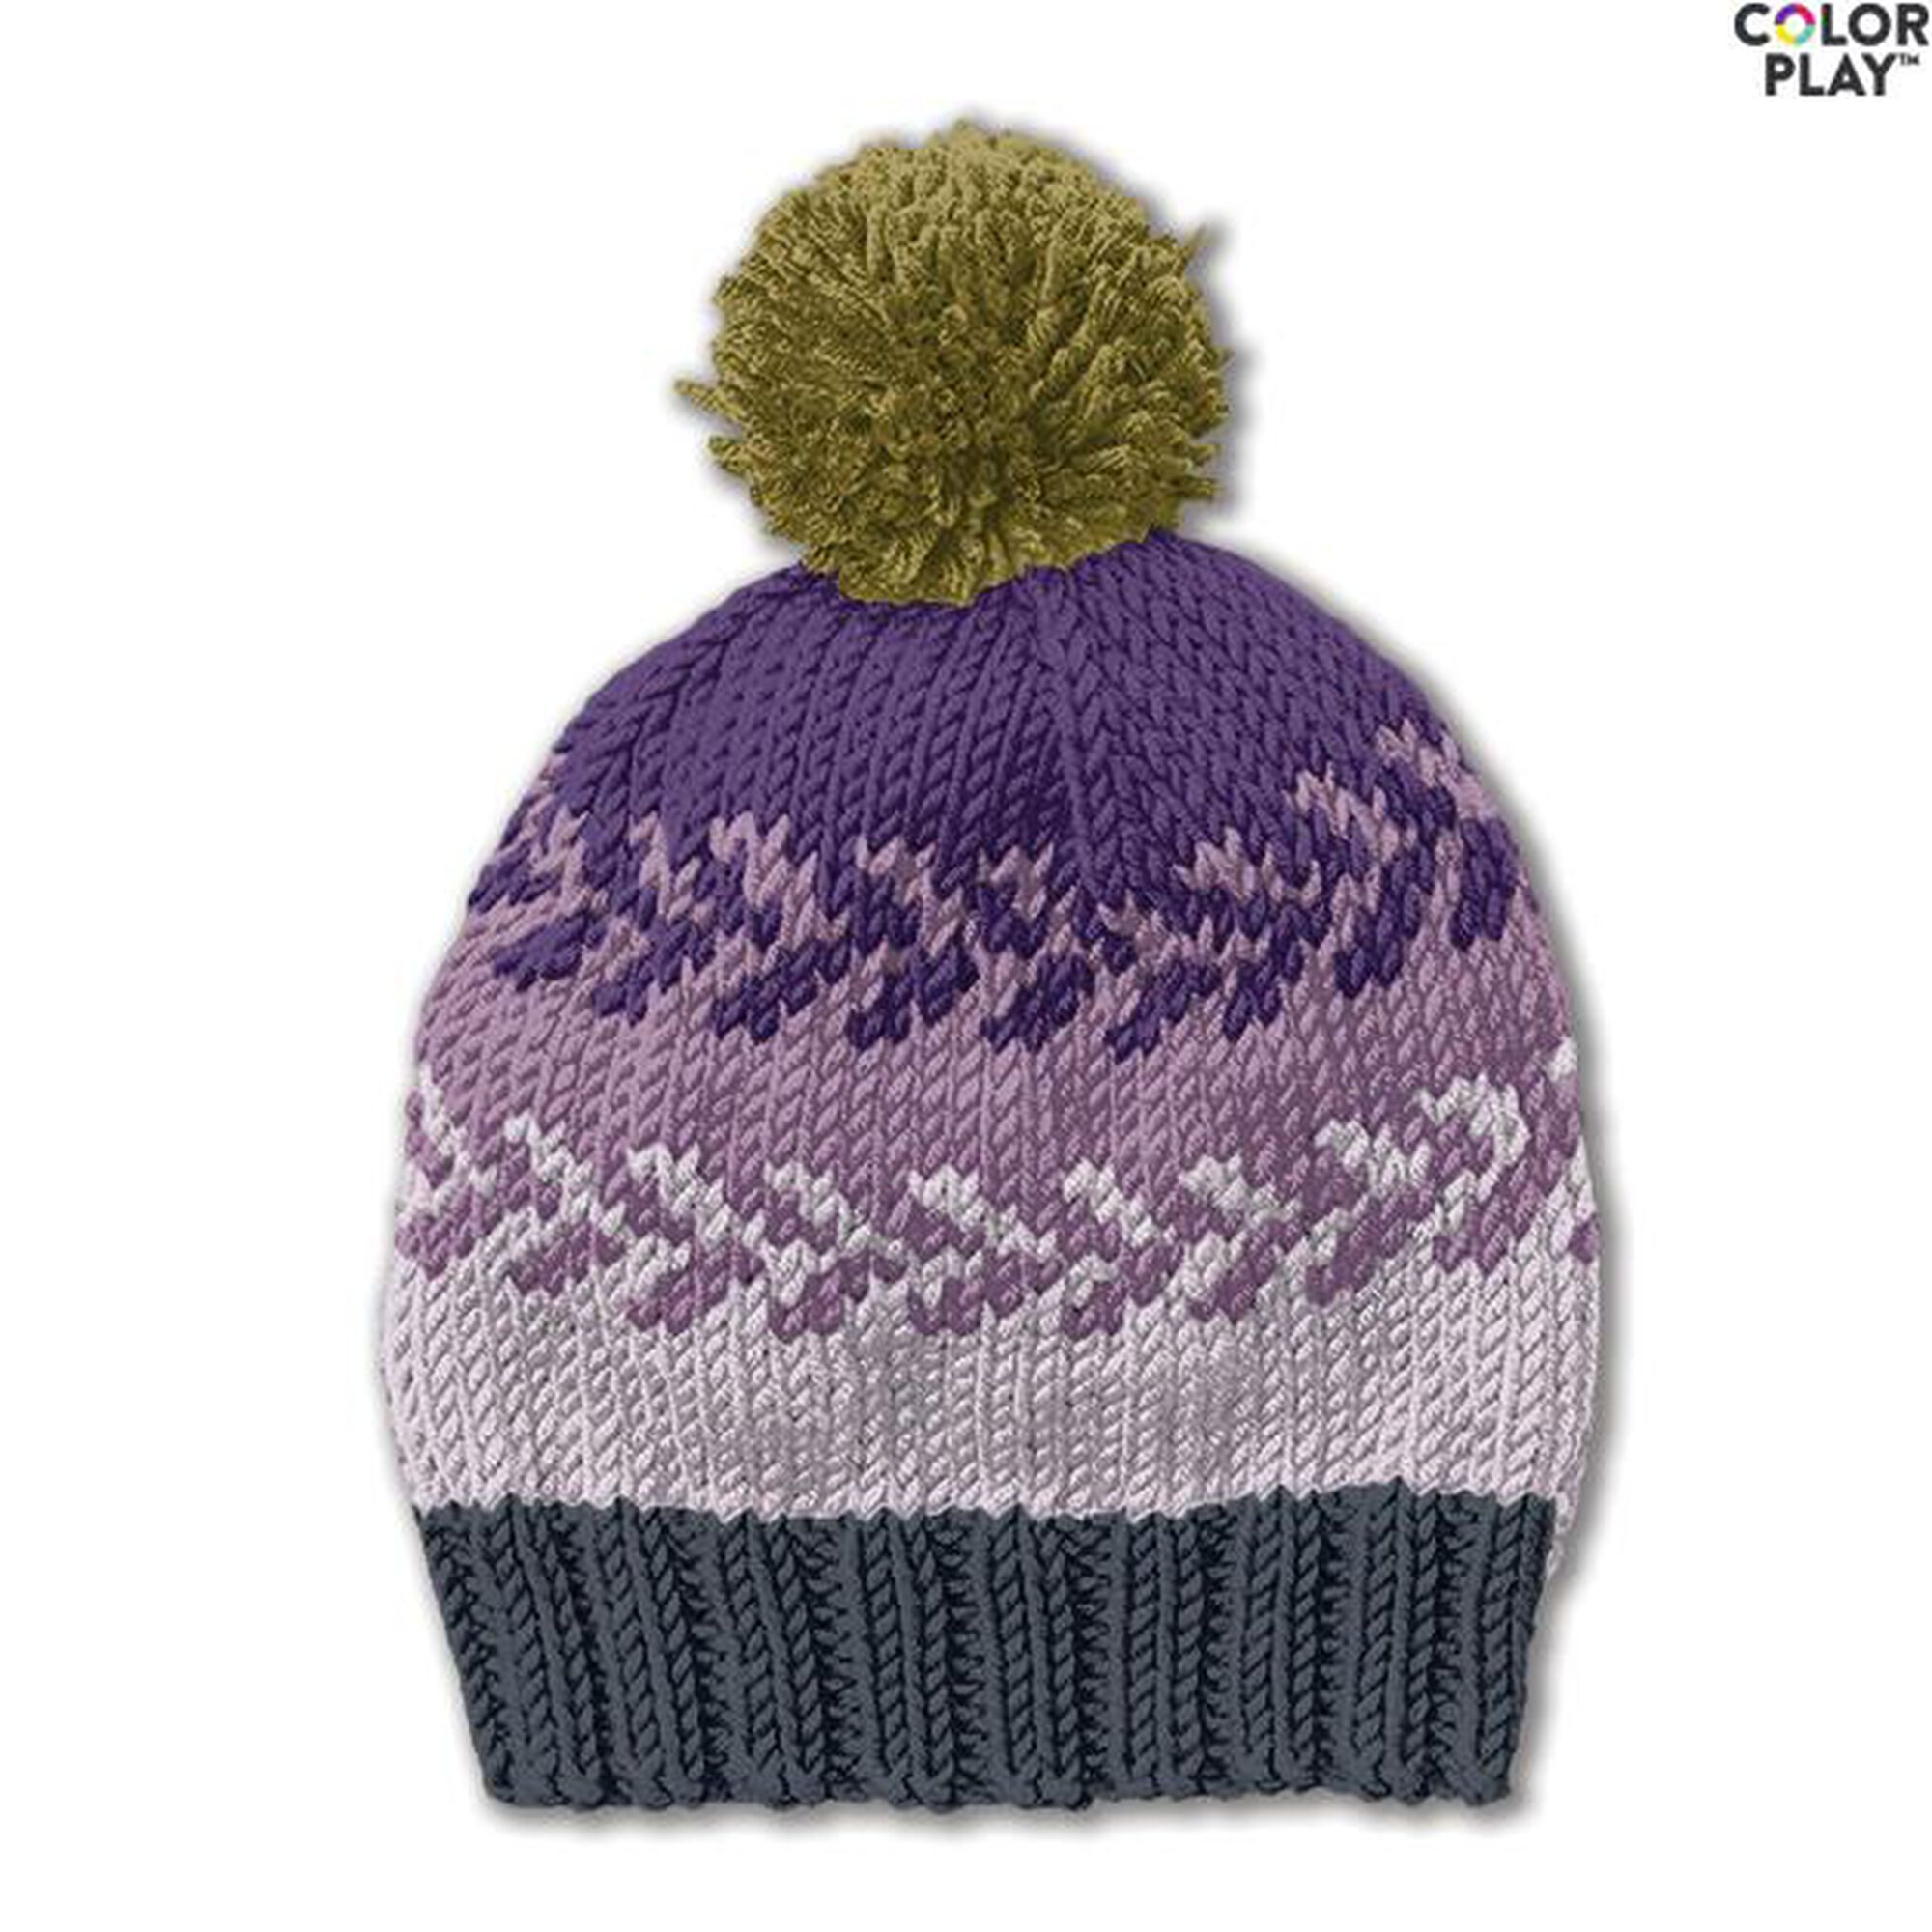 accf06dca91 More Inspirational Images. Previous. Caron x Pantone Knit Fair Isle Hat ...